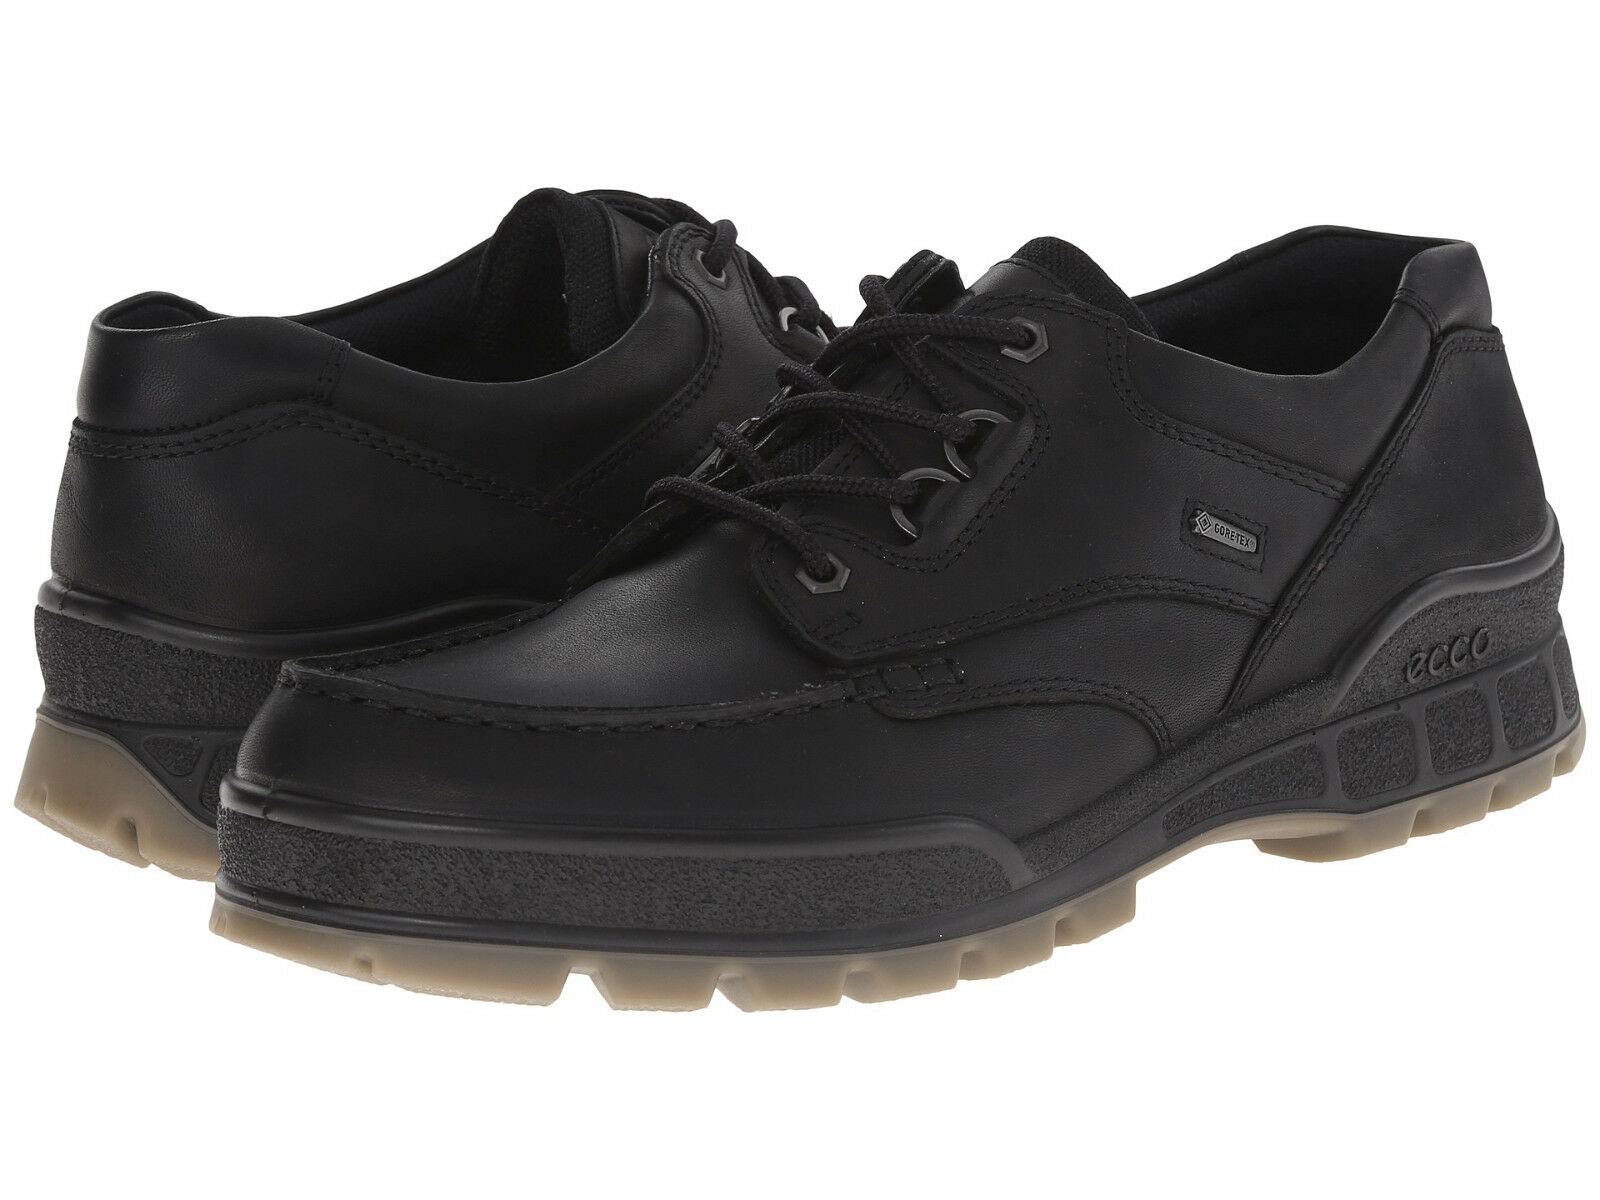 Ecco TRACK II LOW Lace Up Black Leather Waterproof Gore Tex Comfort Oxford shoes